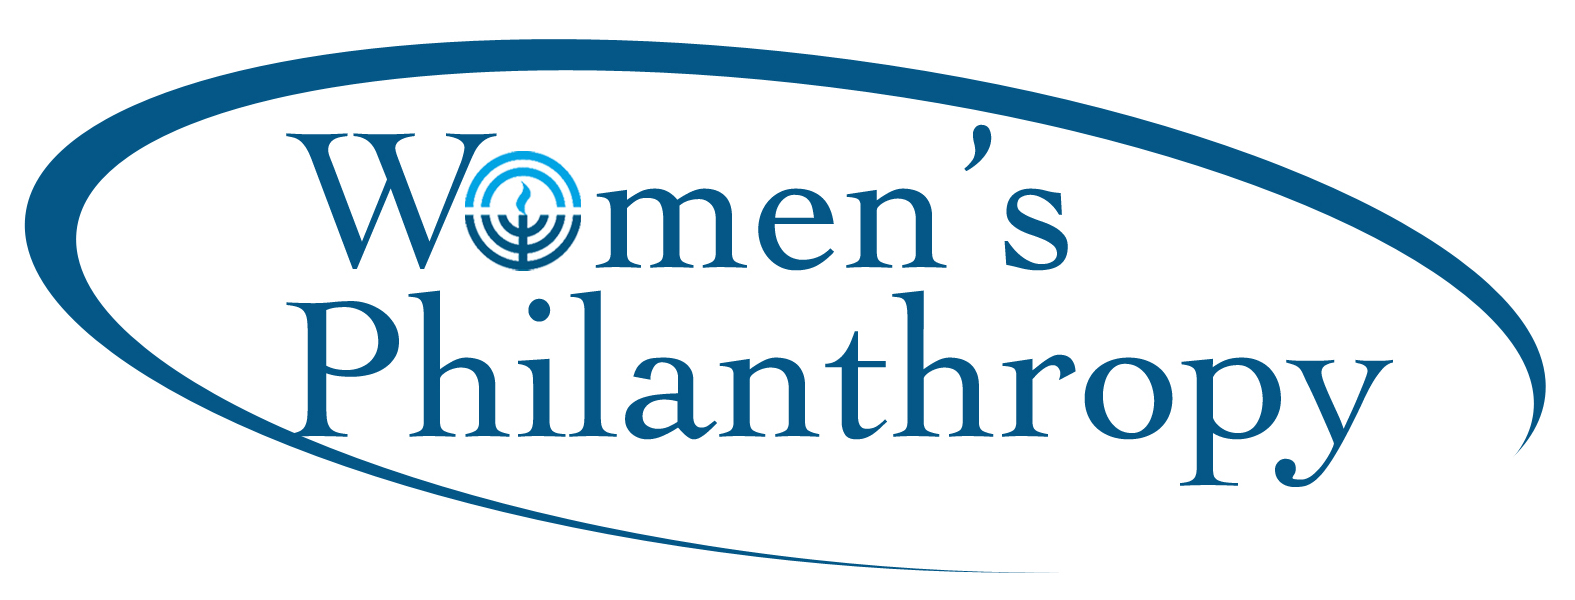 new canaan jewish single women The mission of youth services is to help new canaan youth and families to function optimally by developing programs and  jewish family services  women, infants .